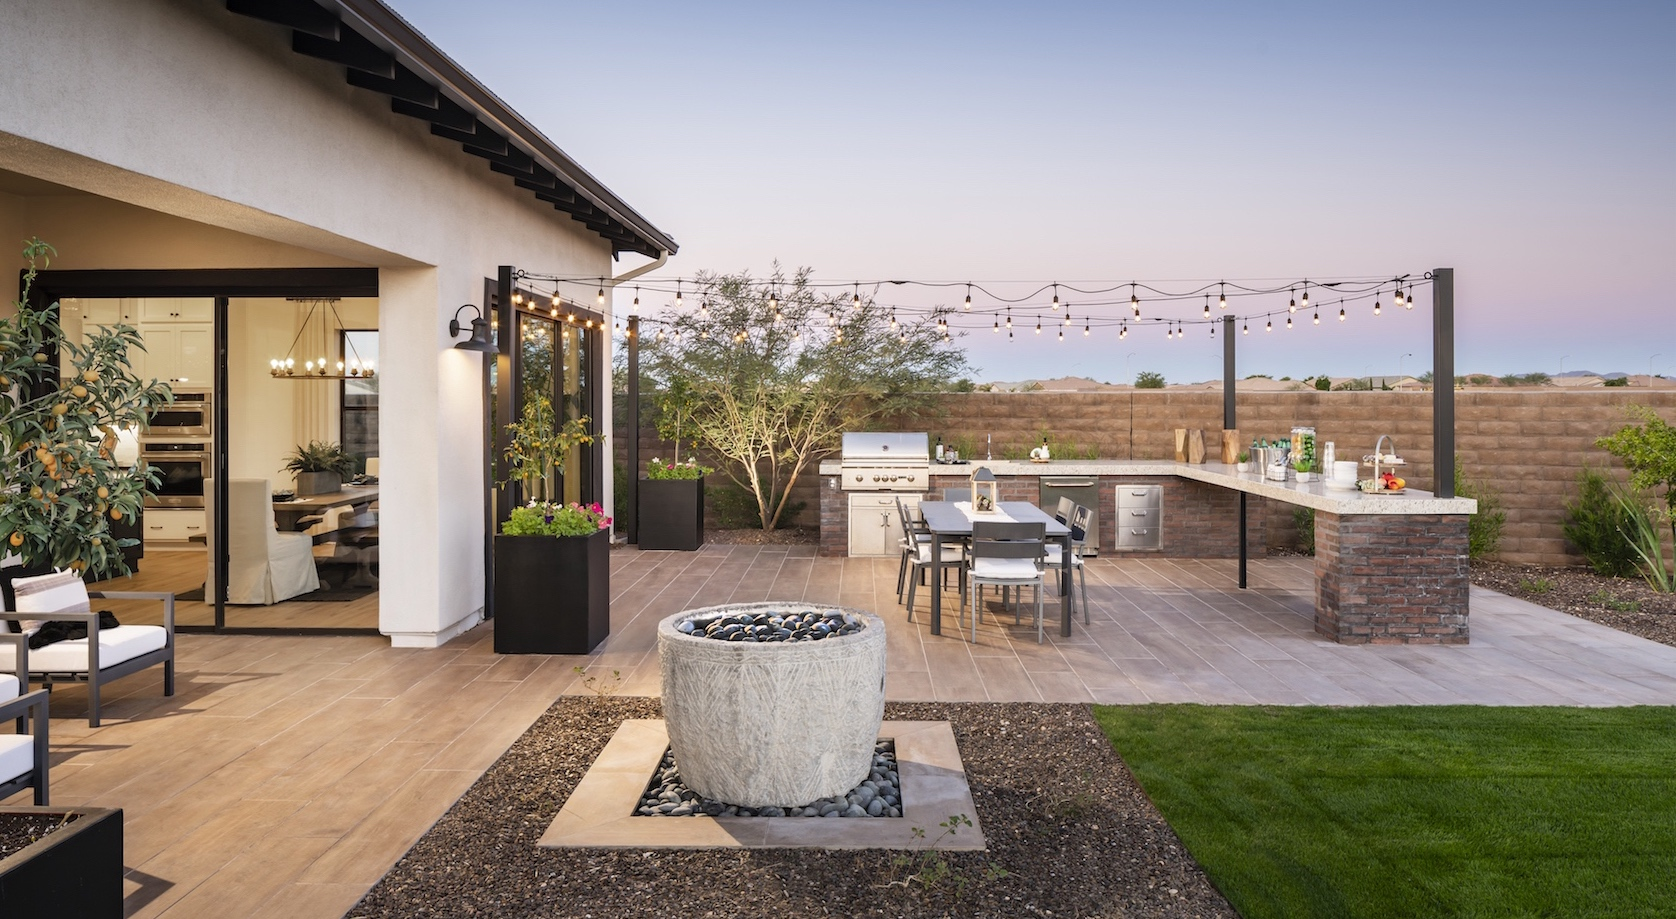 Backyard in a New Construction Home in Arizona